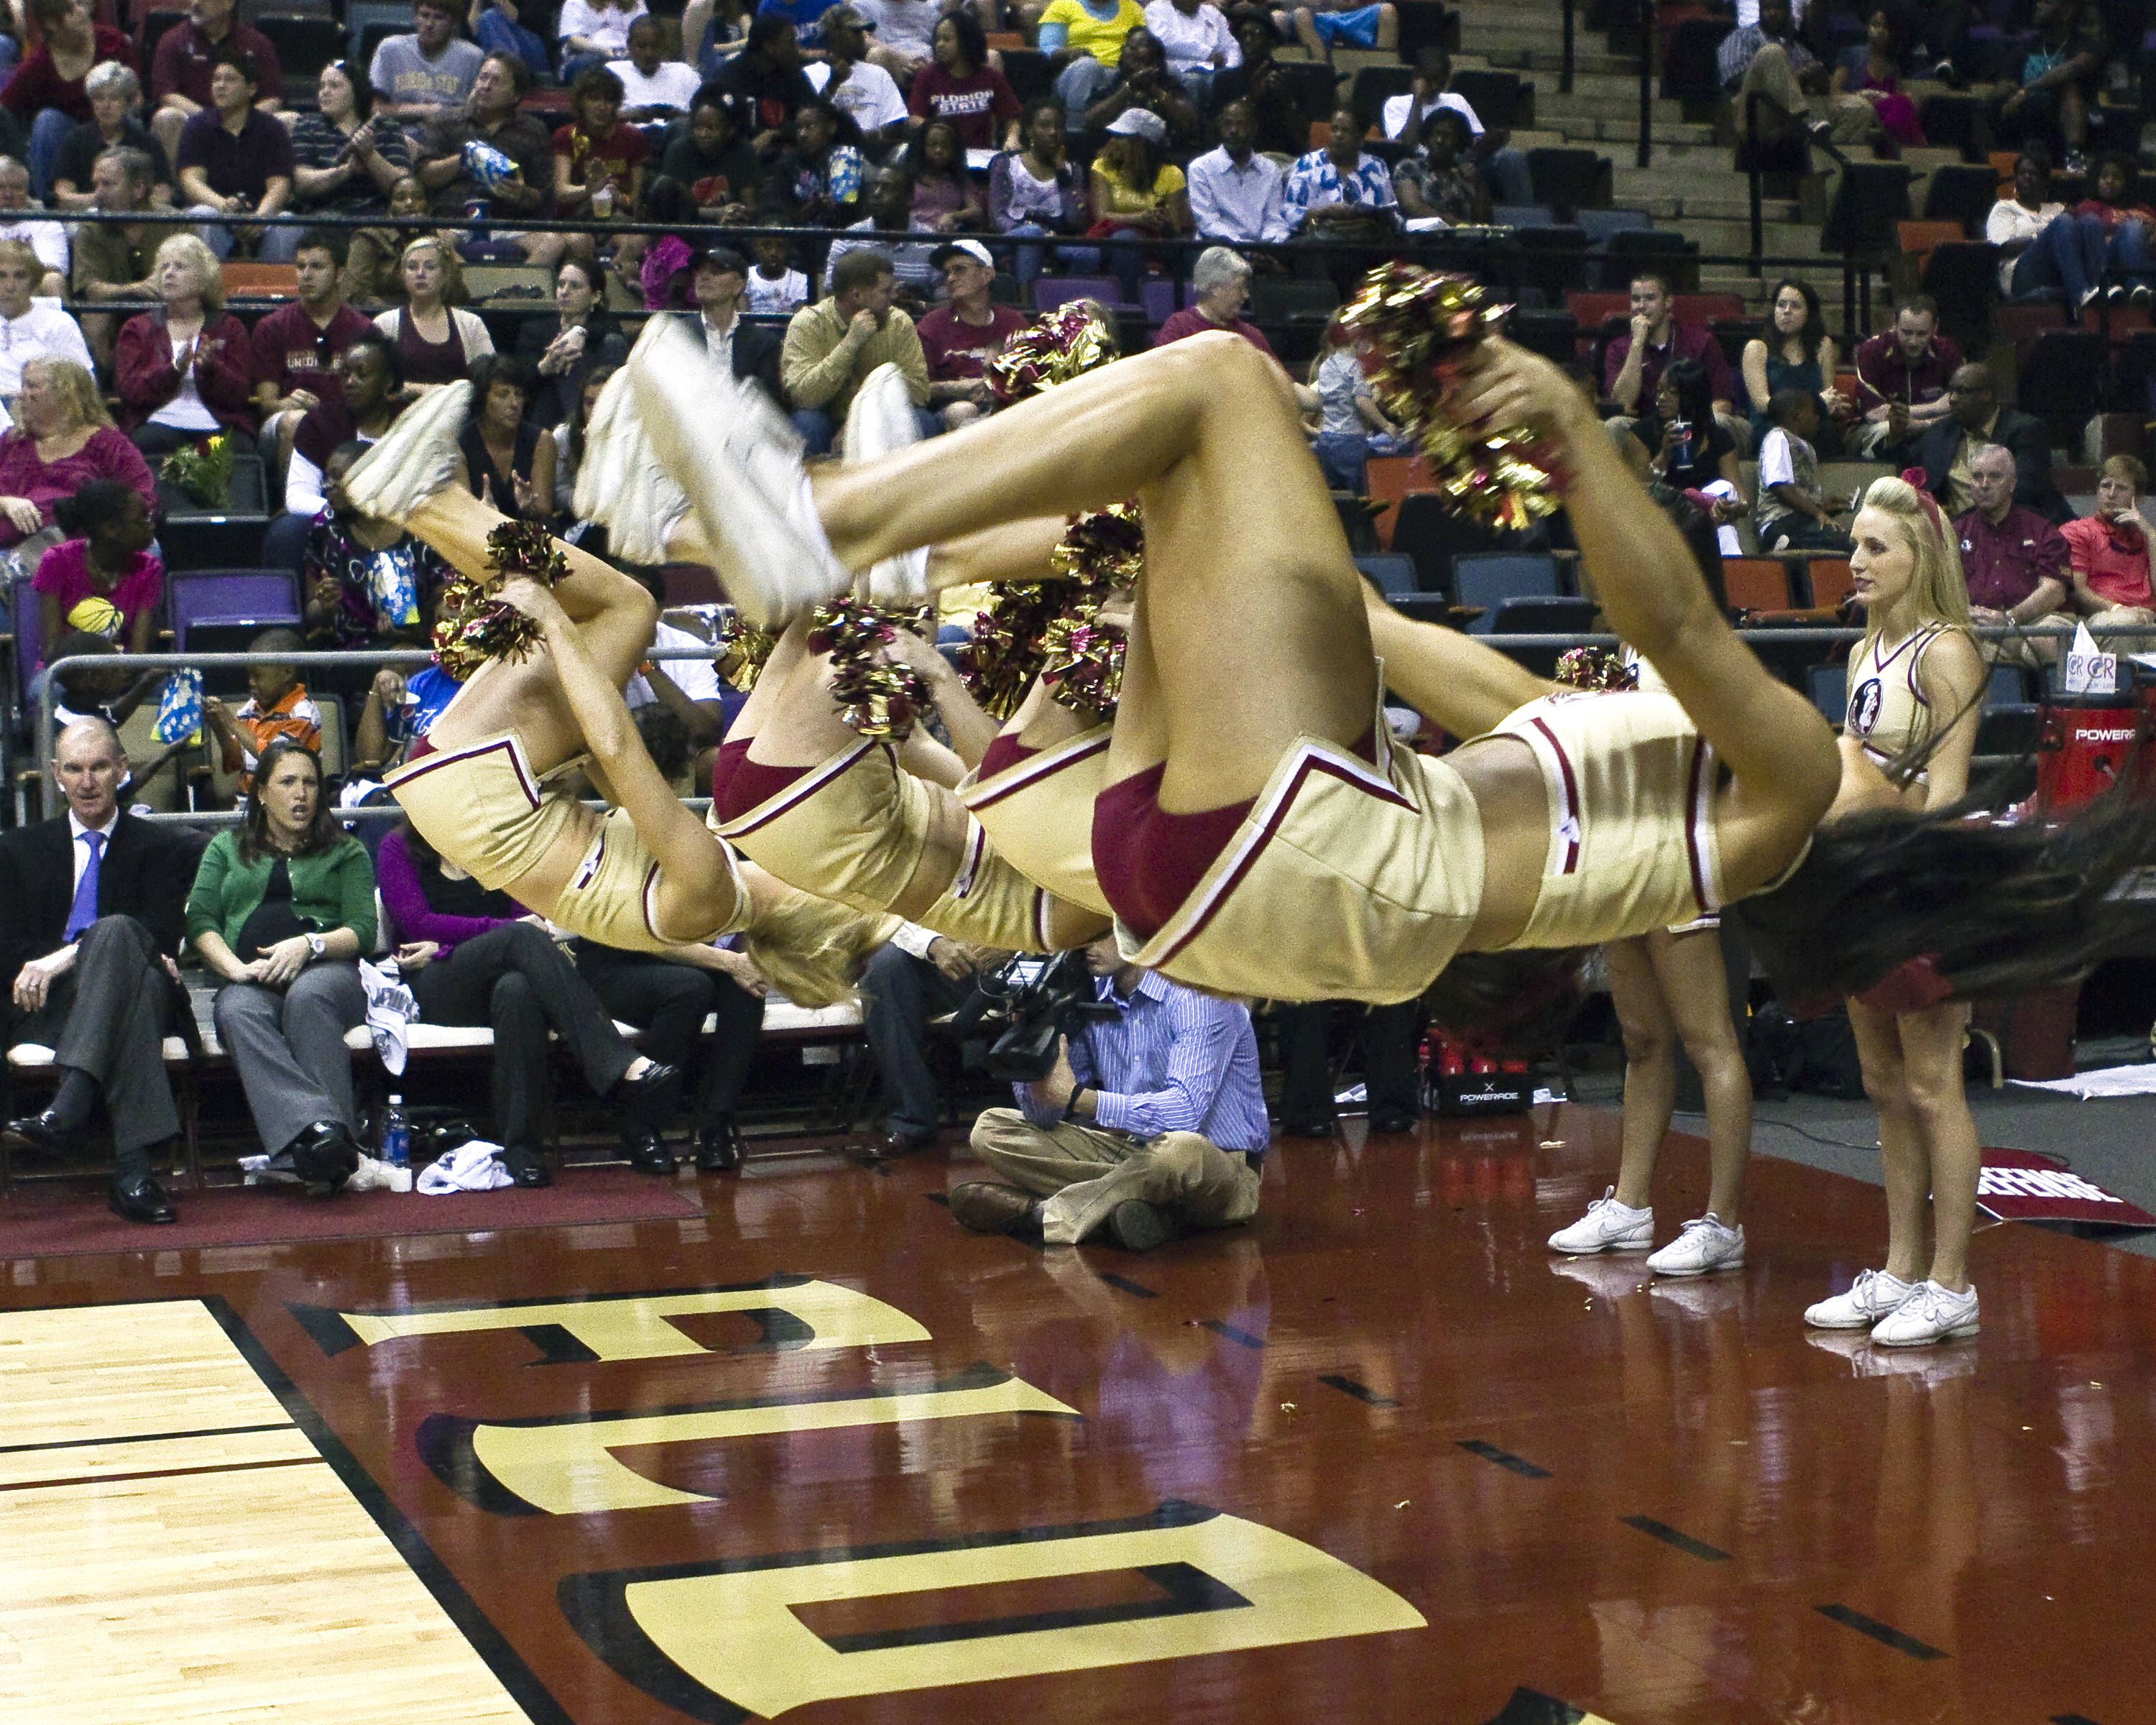 FSU vs Clemson- 02//27/11 - FSU Cheerleaders